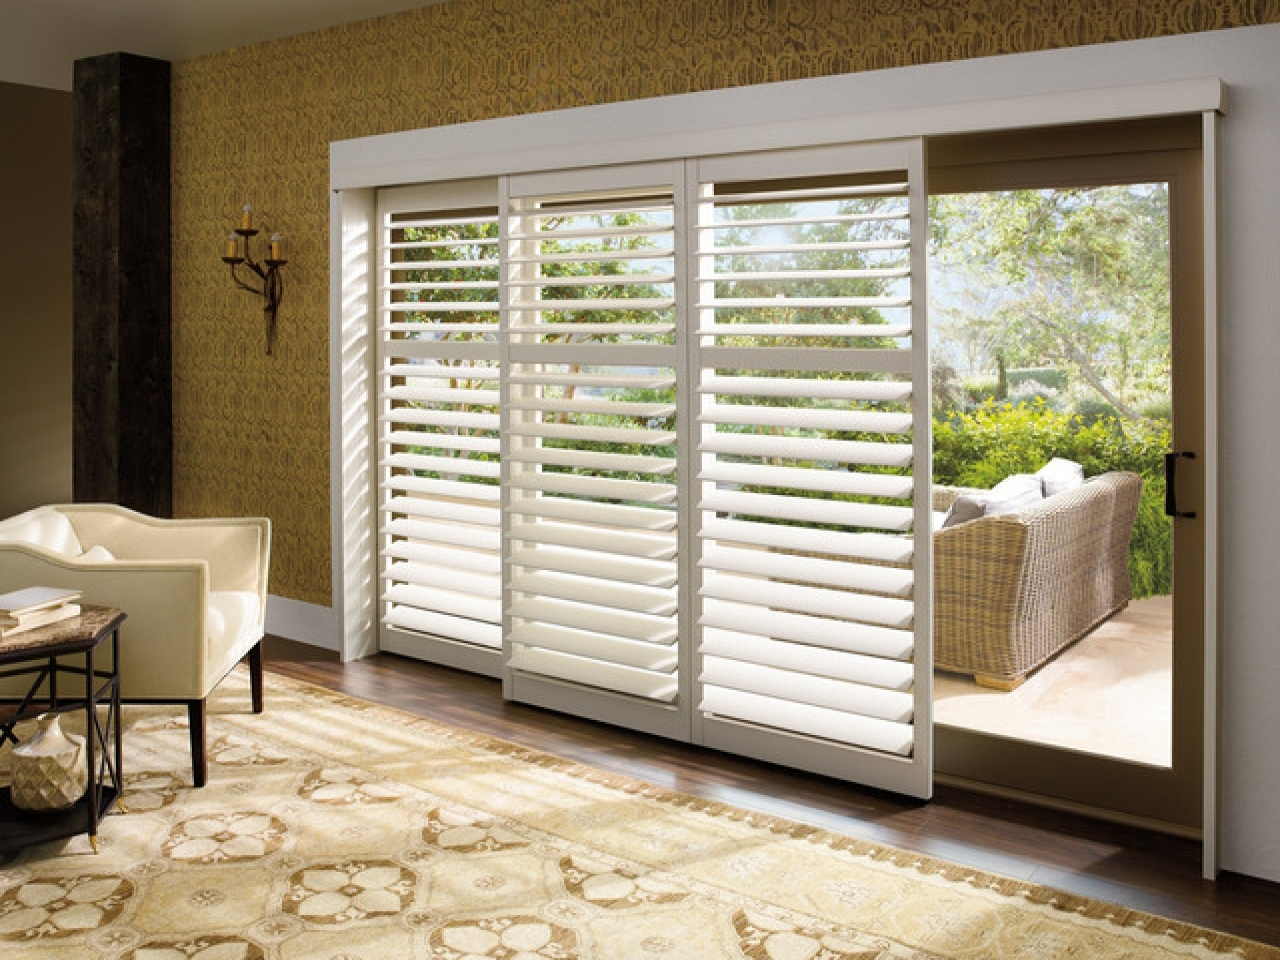 Sliding Glass Door Window Panelsoptions for sliding glass doors window treatments saudireiki